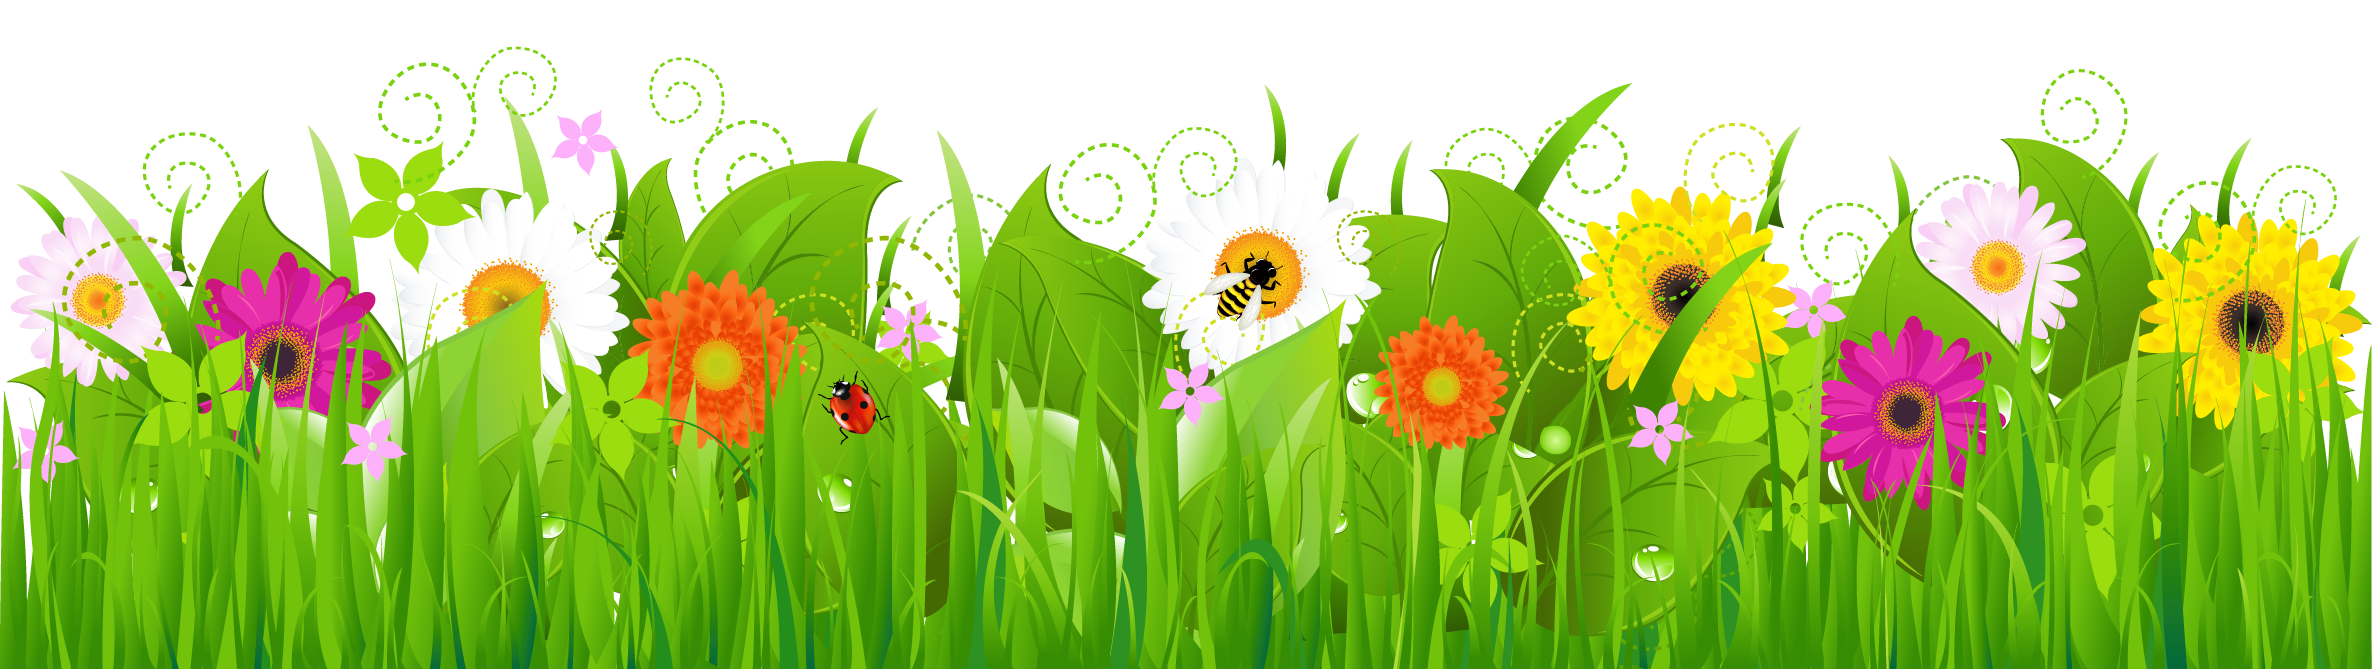 Clipart grass and flowers.